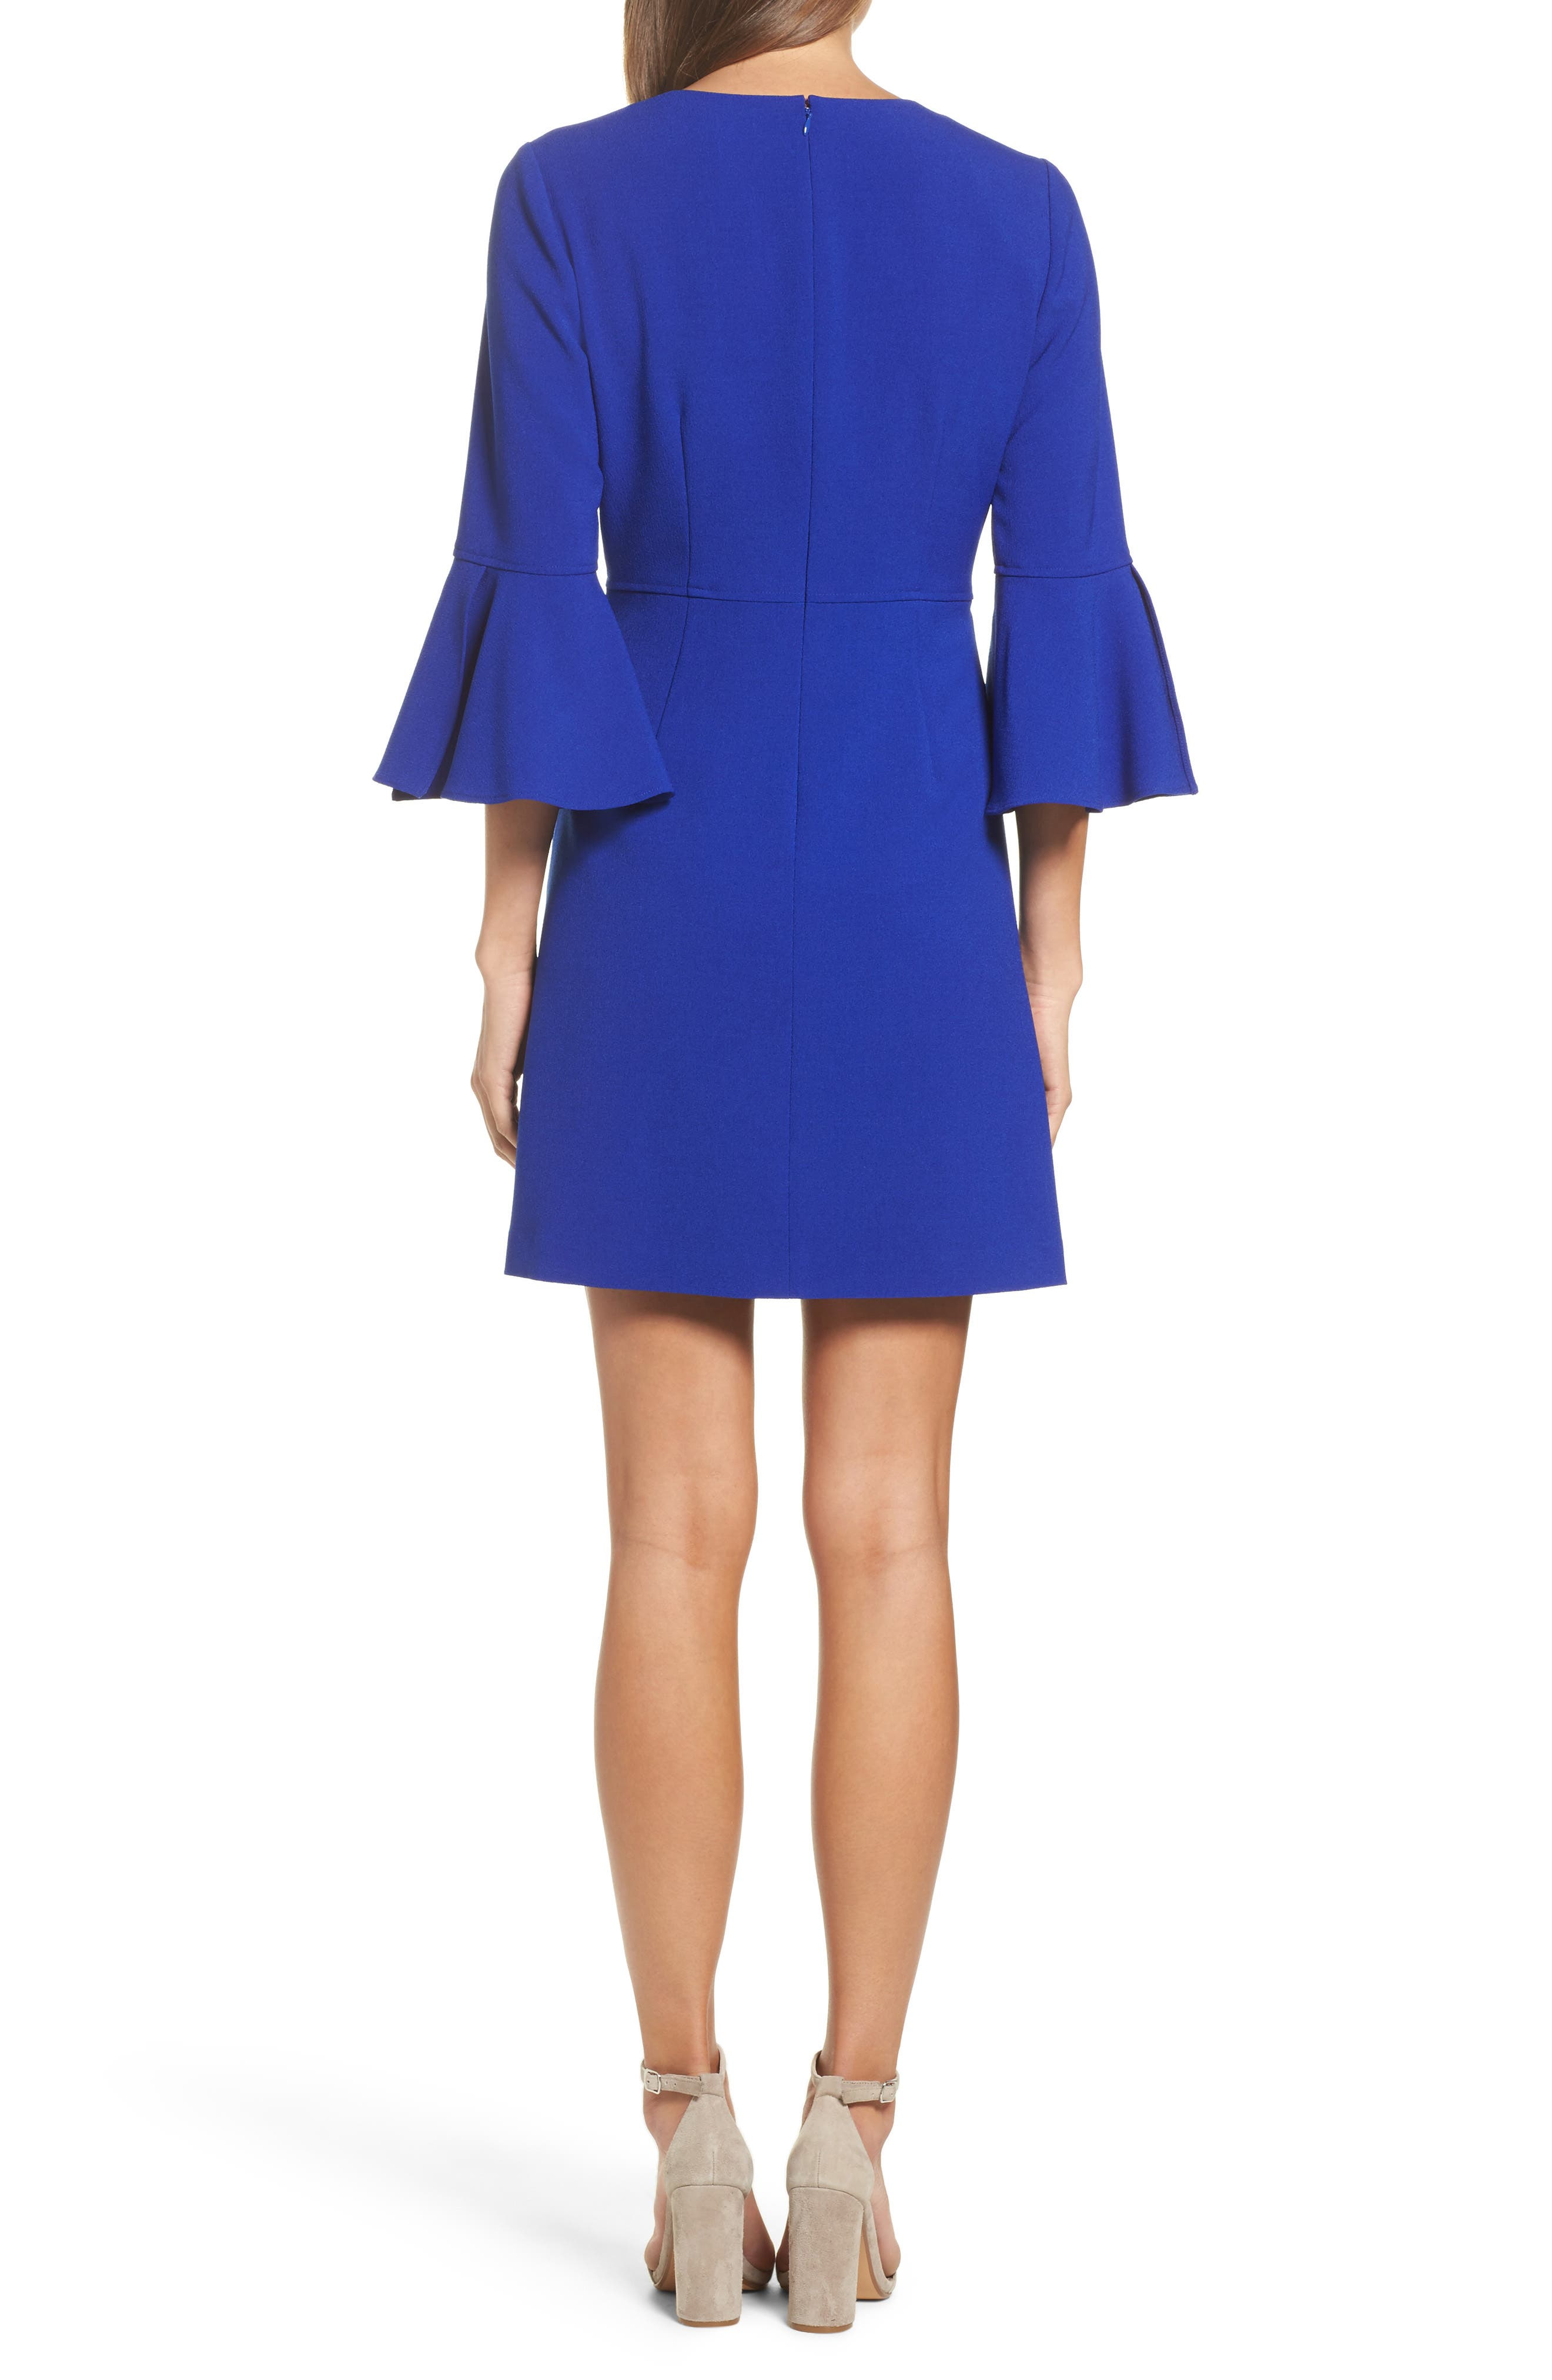 Bell Sleeve Dress,                             Alternate thumbnail 2, color,                             430